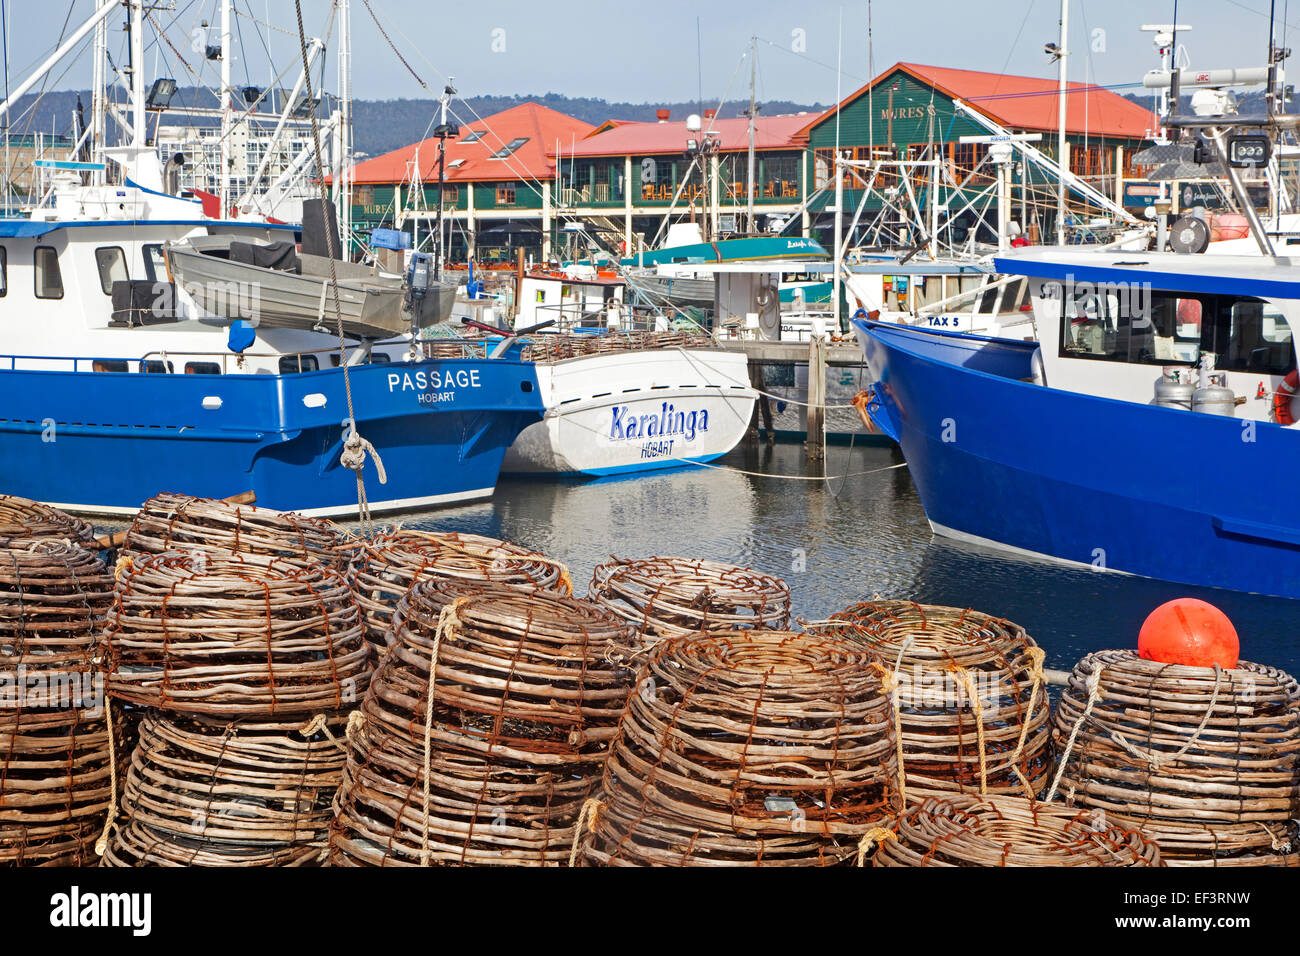 Lobster traps  / crawfish pots and fishing boats docked in the Hobart harbour, Tasmania, Australia - Stock Image